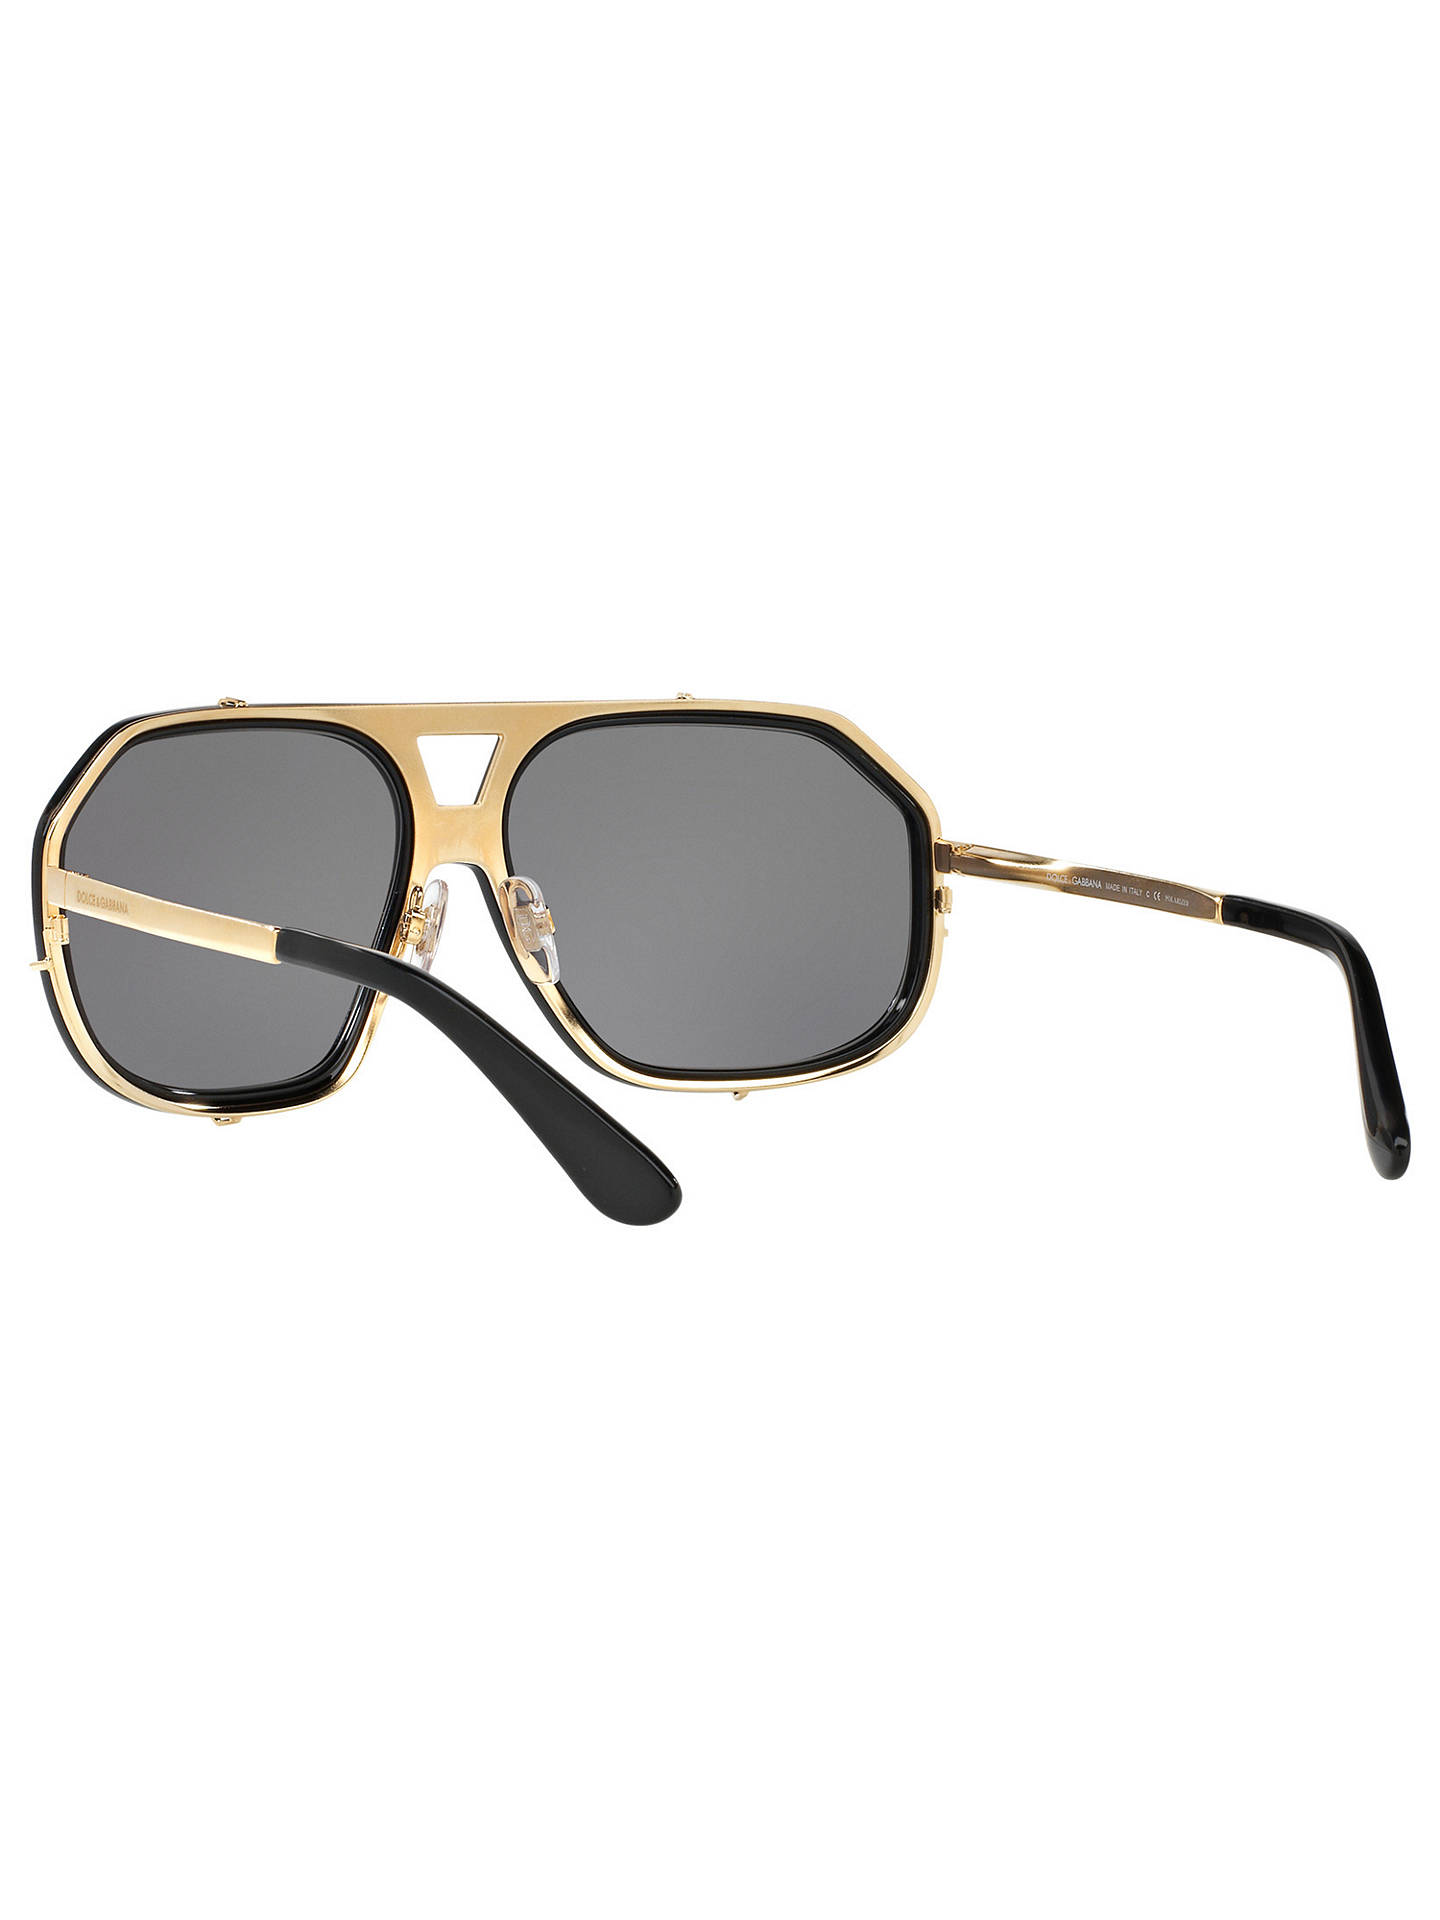 86b0aeb097e Buy Dolce   Gabbana DG2167 Polarised Aviator Sunglasses